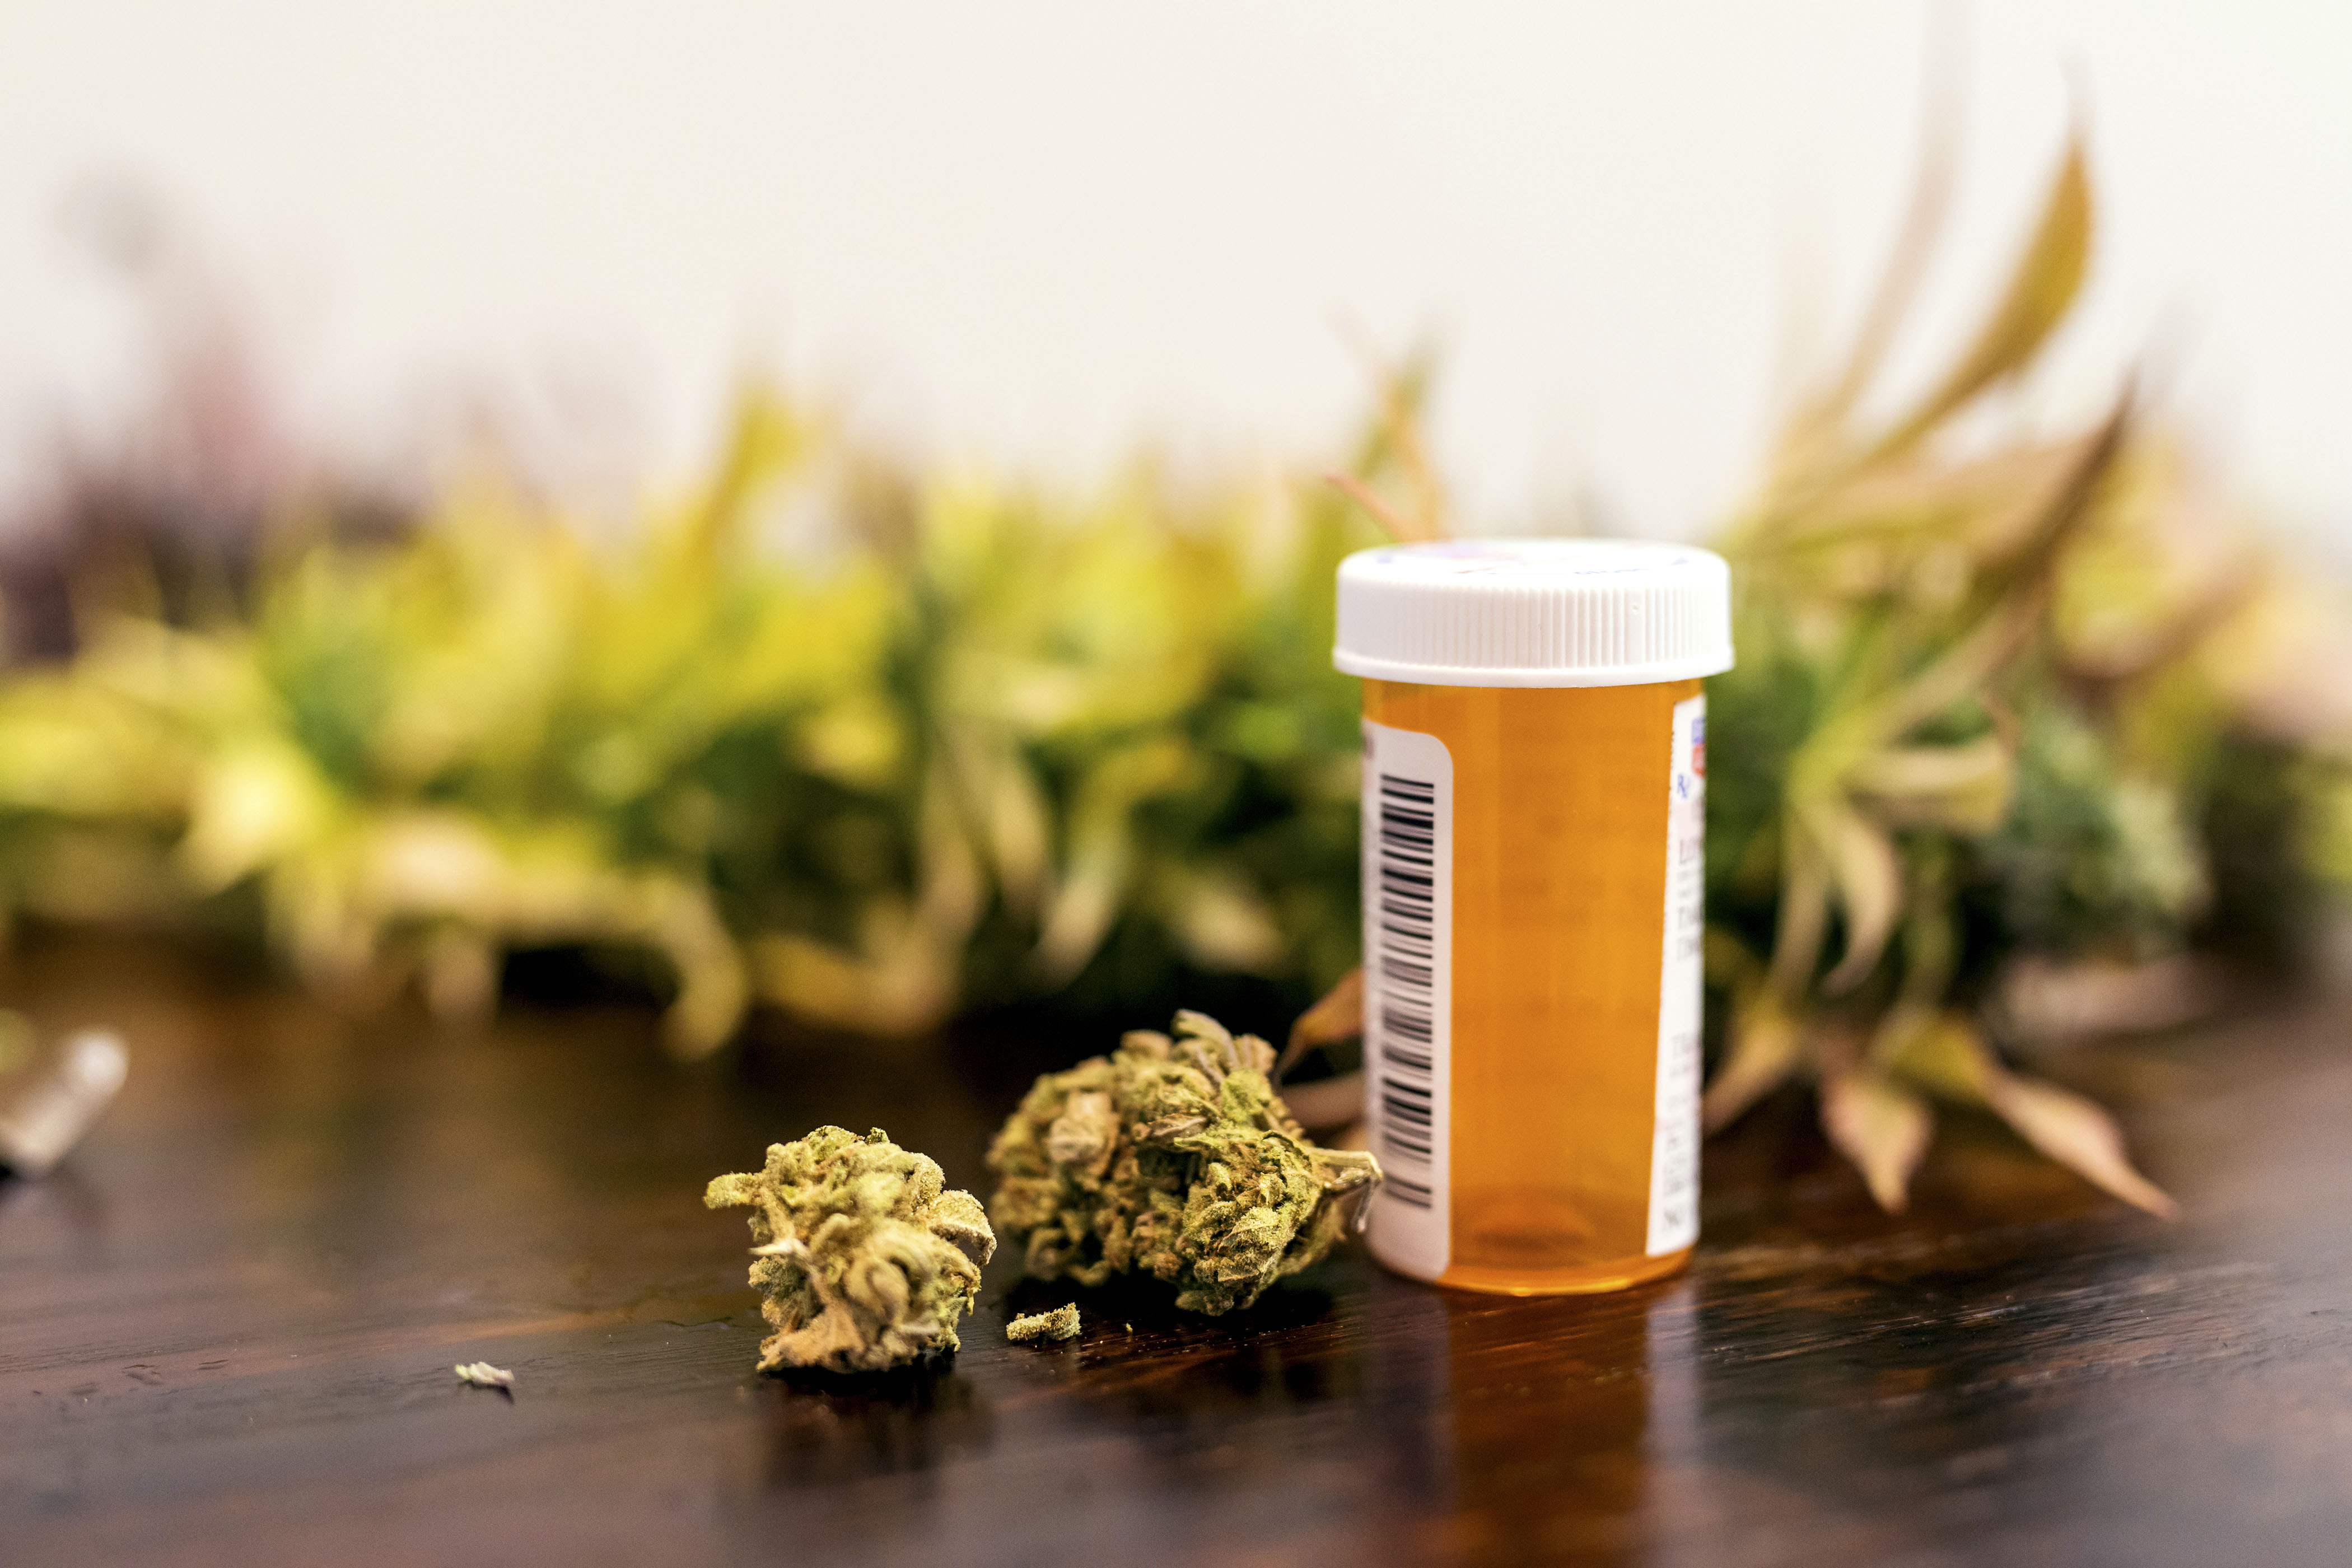 States That Legalize Medical Marijuana Also See Higher Birth